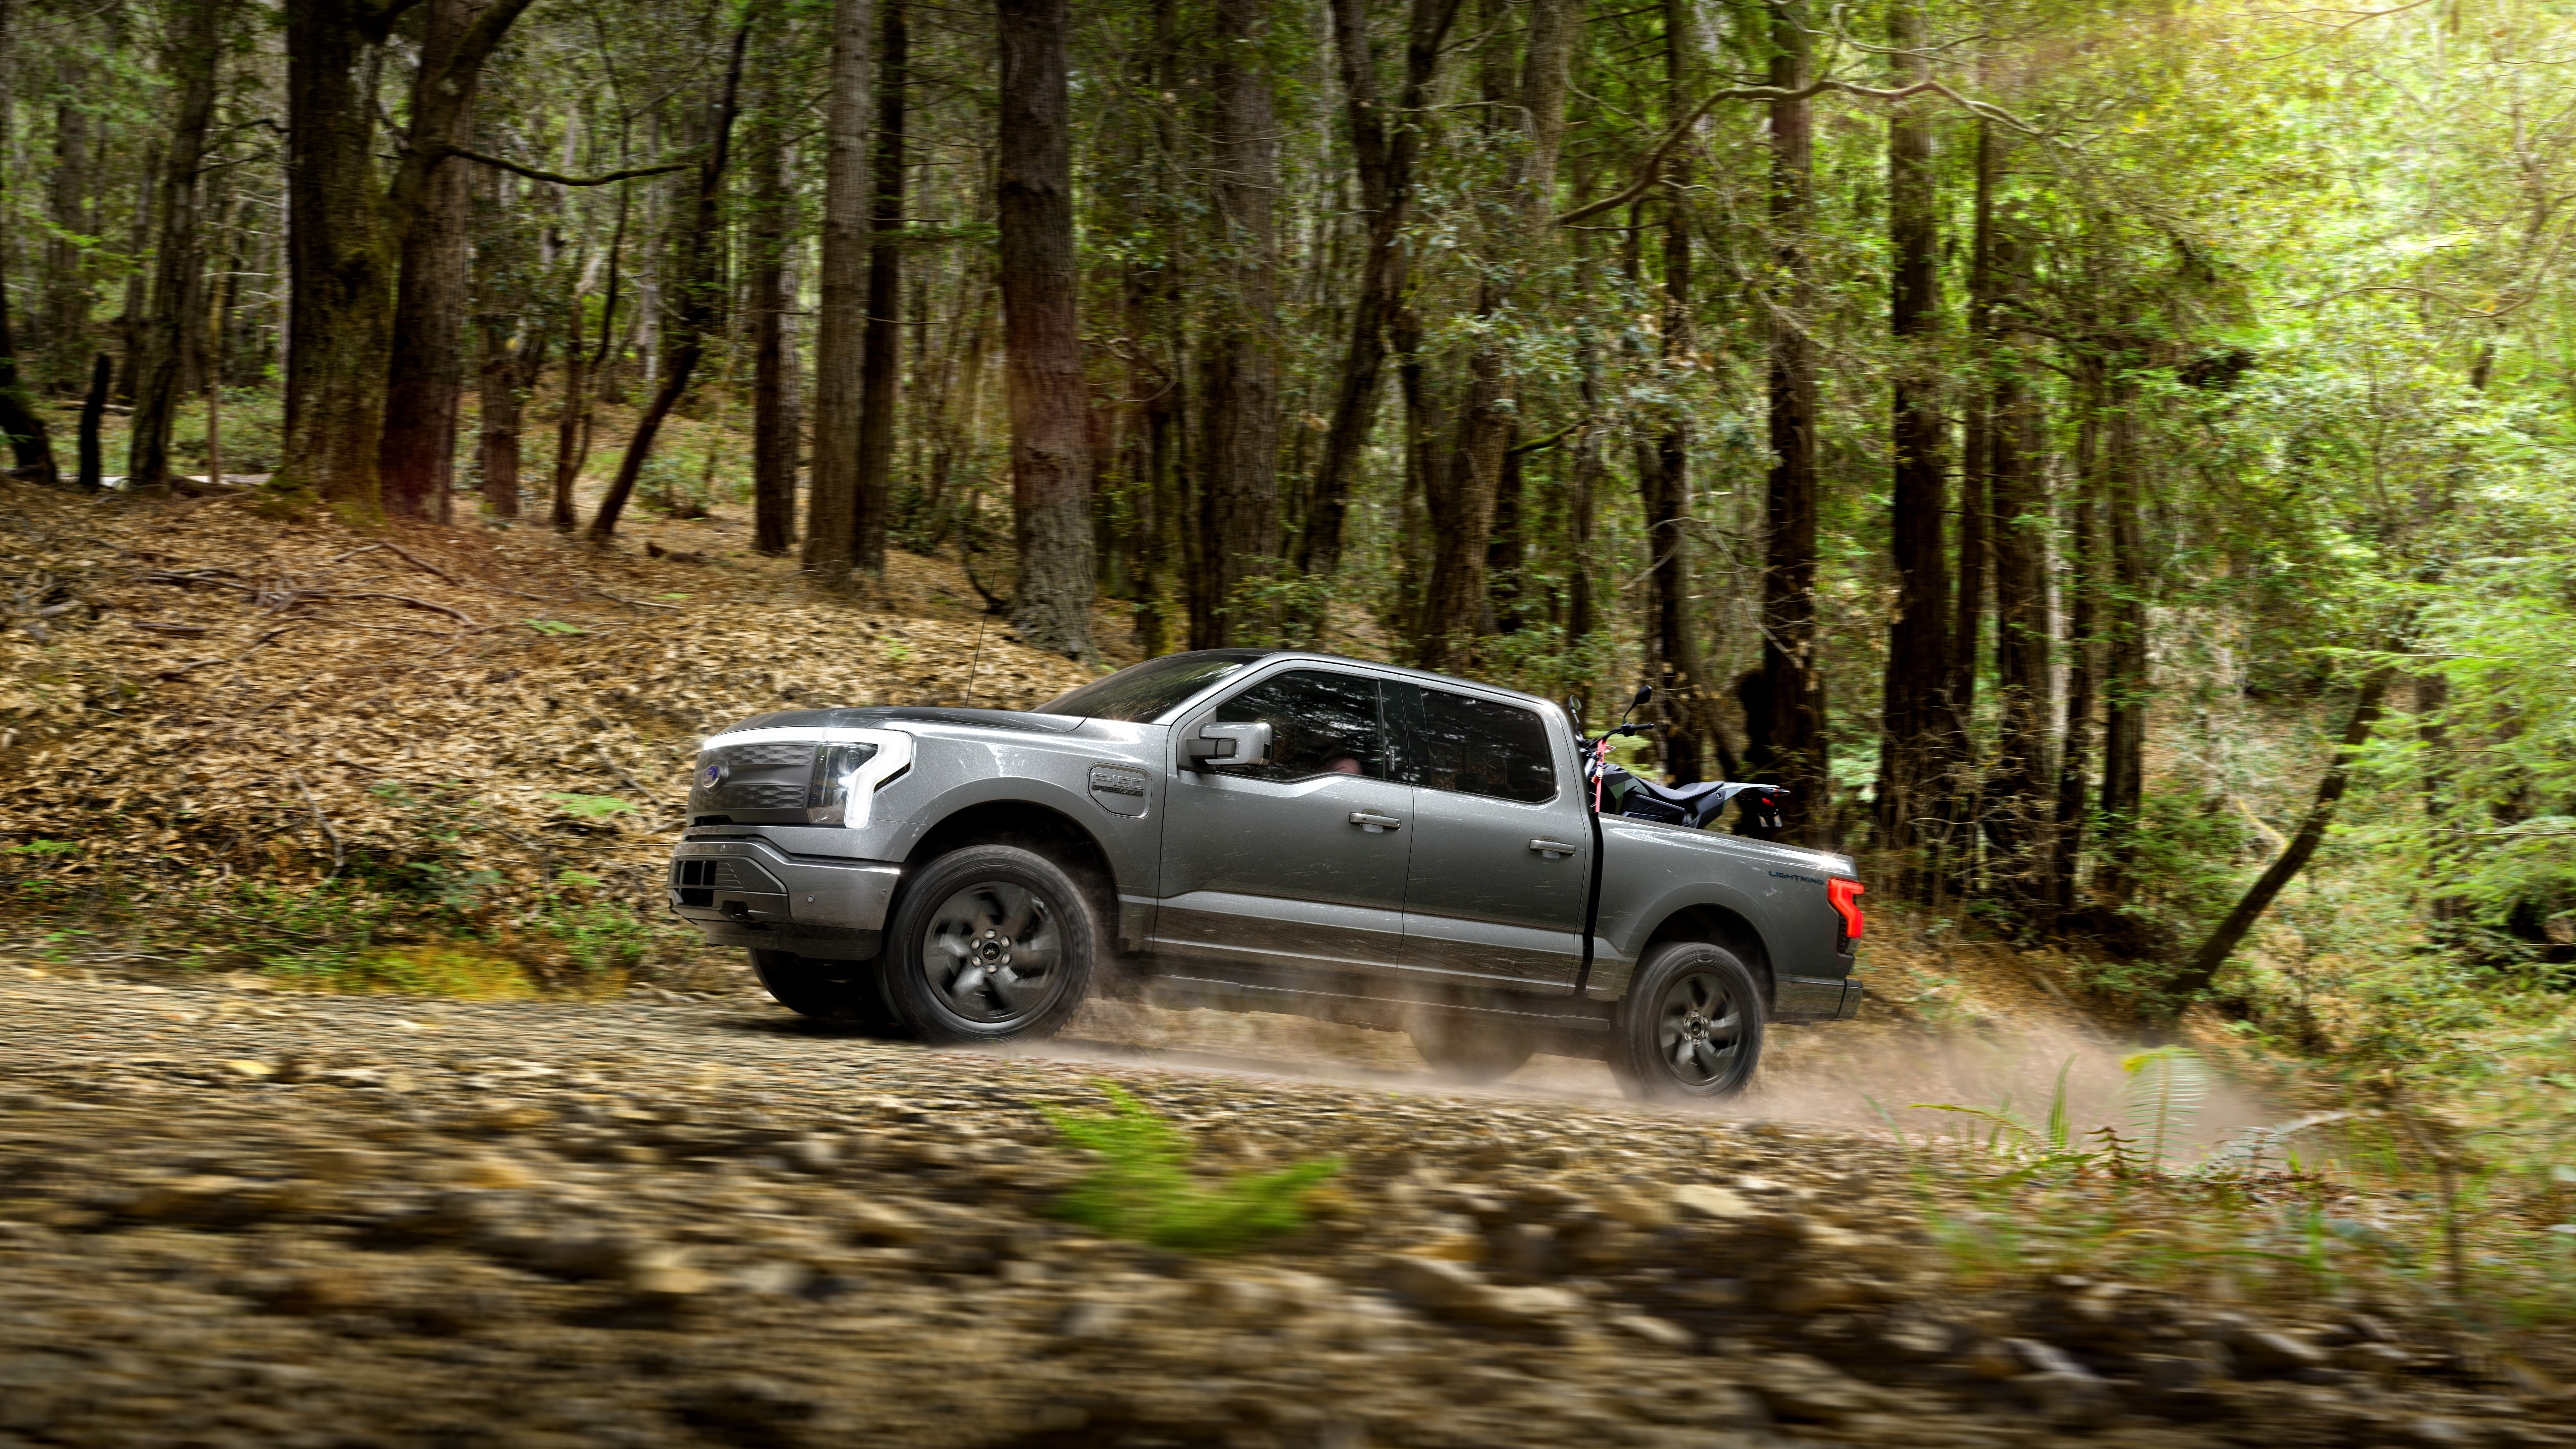 Ford Brings Back the 'Lightning' Name, Turns F-150 Electric